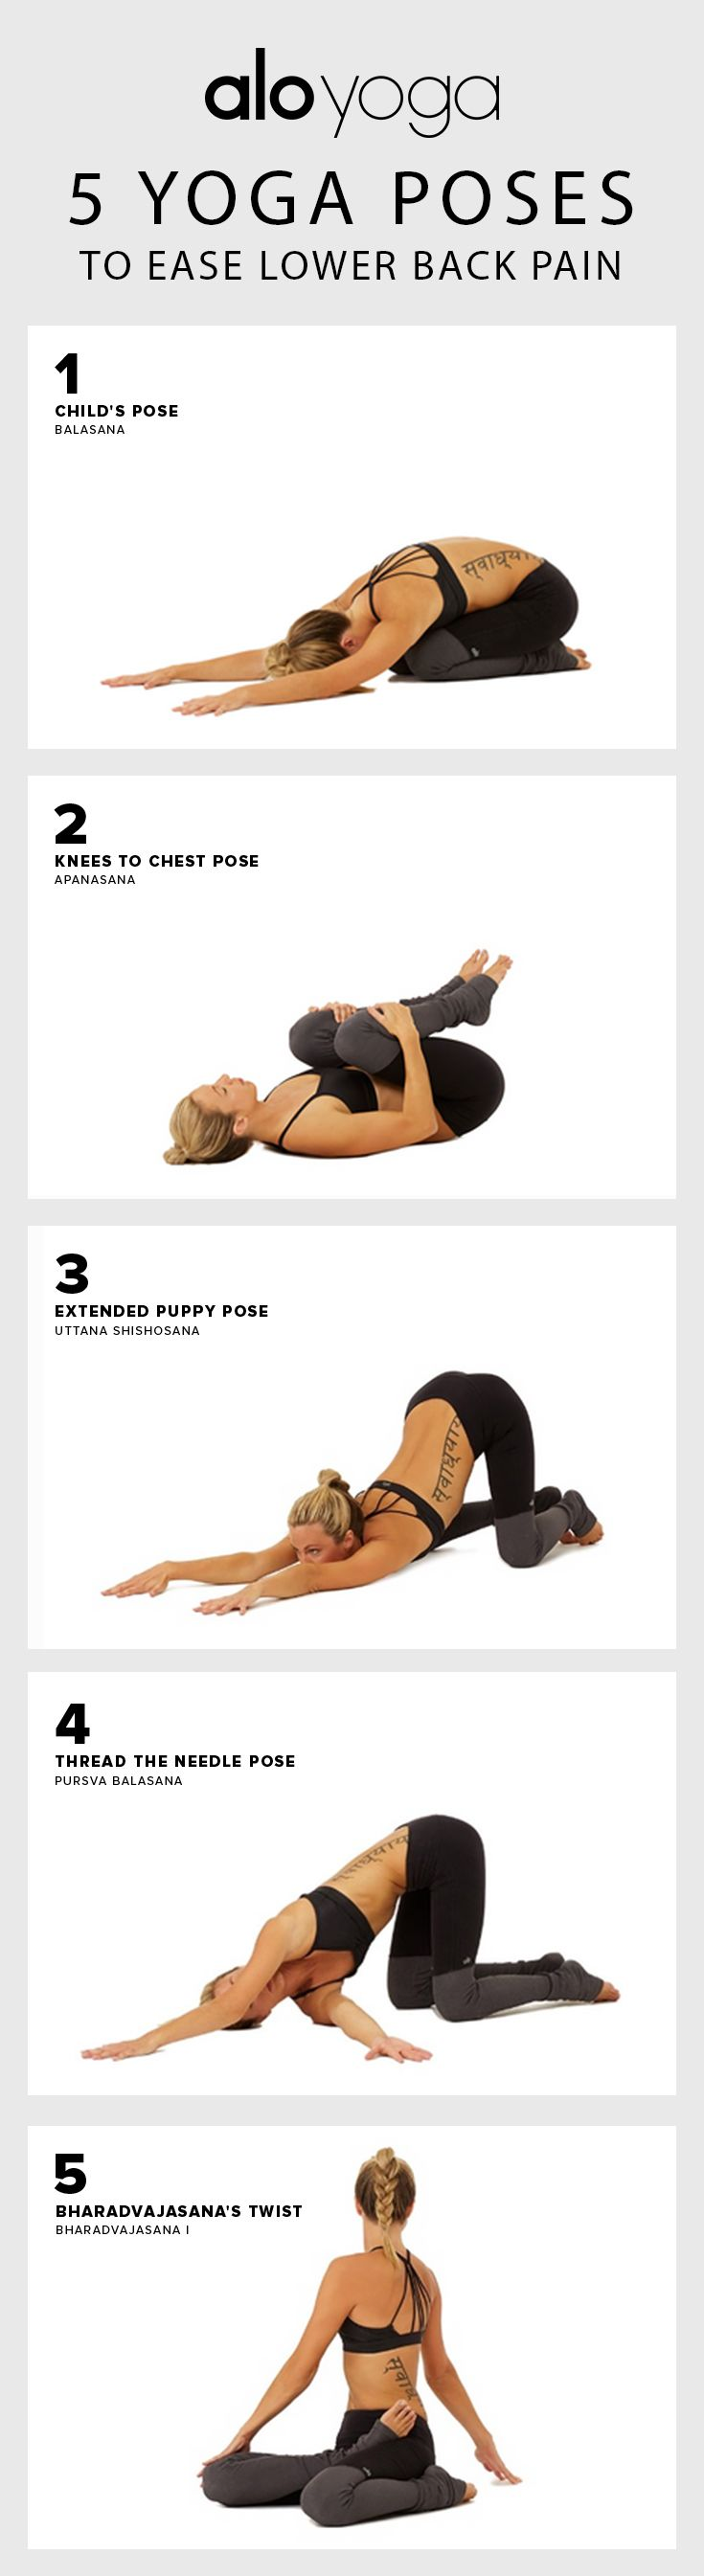 Getting rid of lower back pain the easy way 5 Yoga Poses to Ease Lower Back